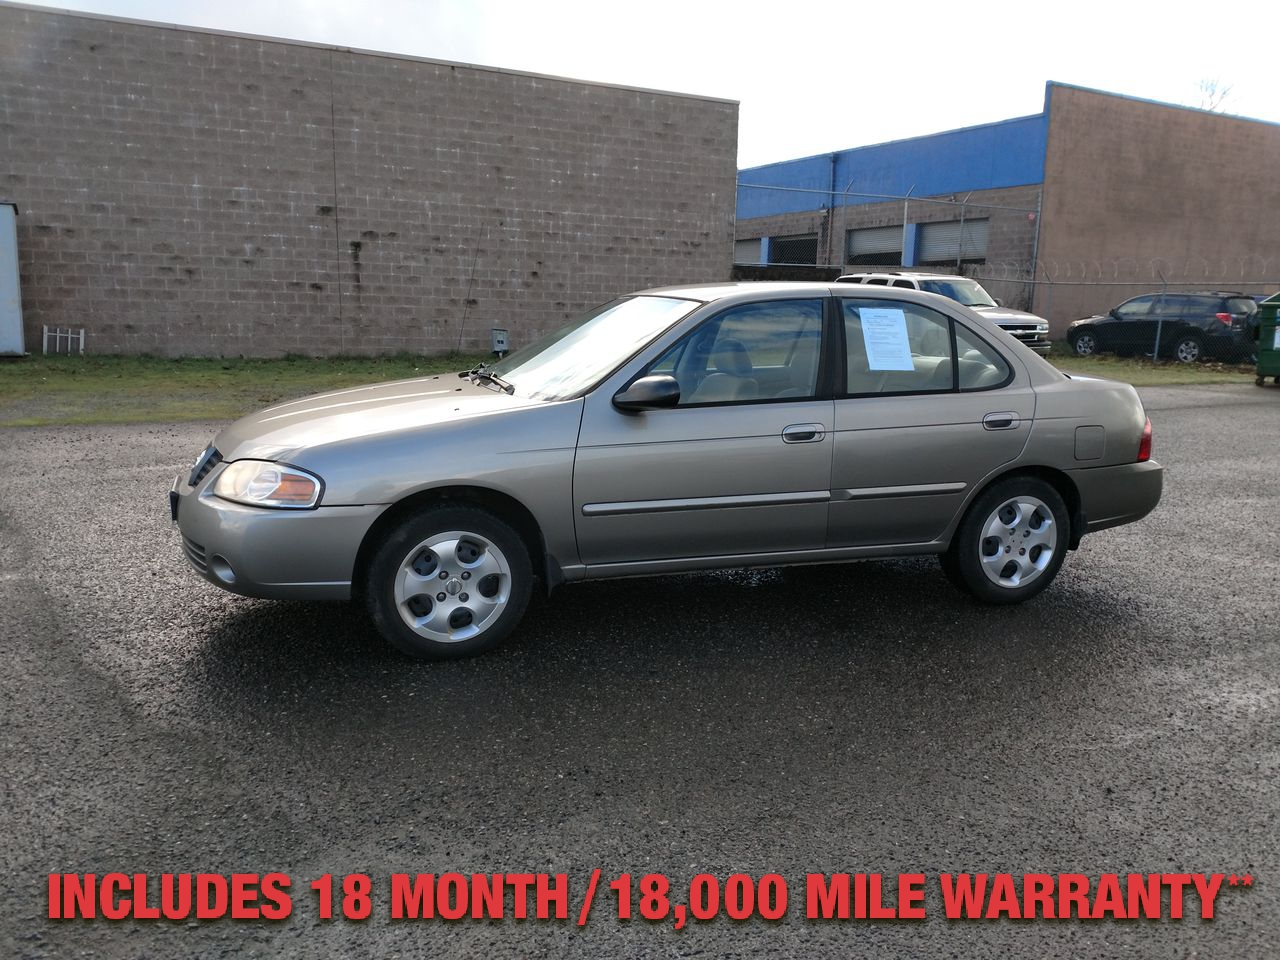 Pre-Owned 2006 NISSAN SENTRA Sedan 4D